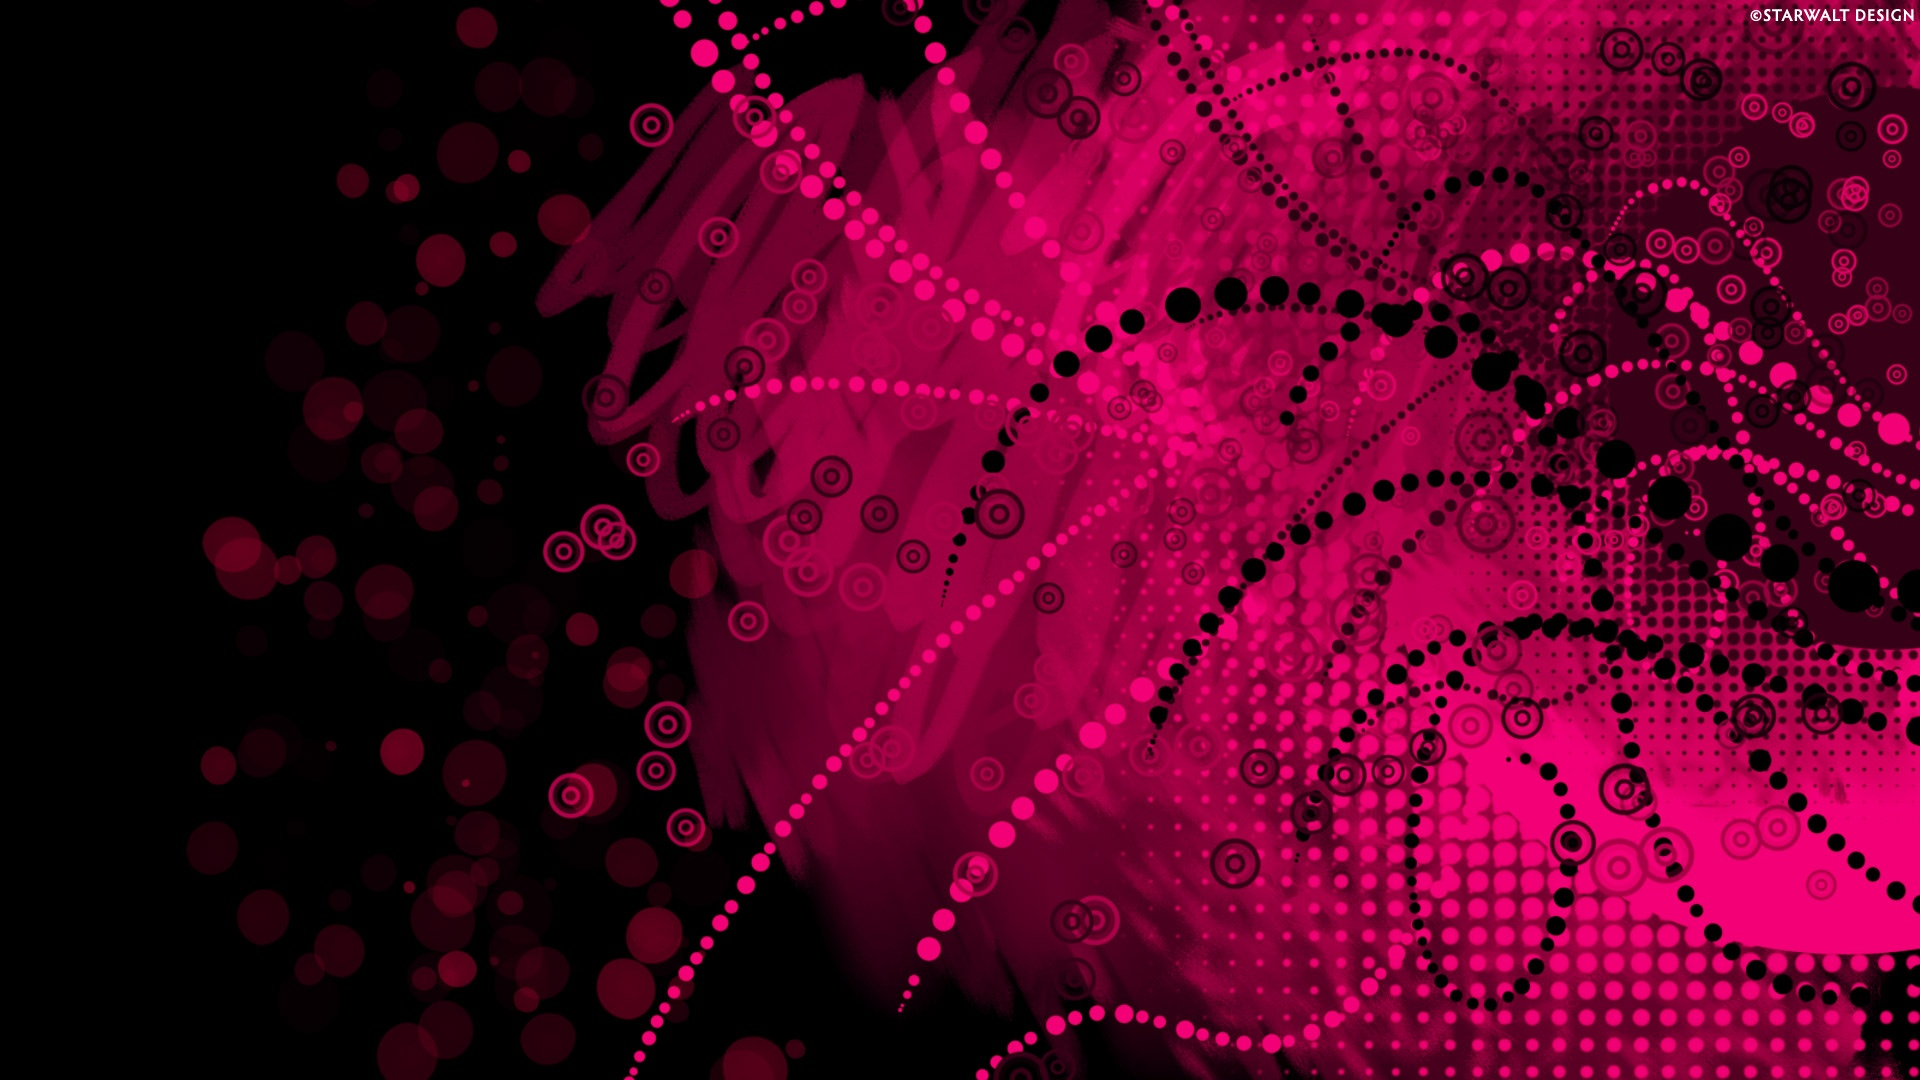 pink dark vector 1080p wallpapers in jpg format for free download